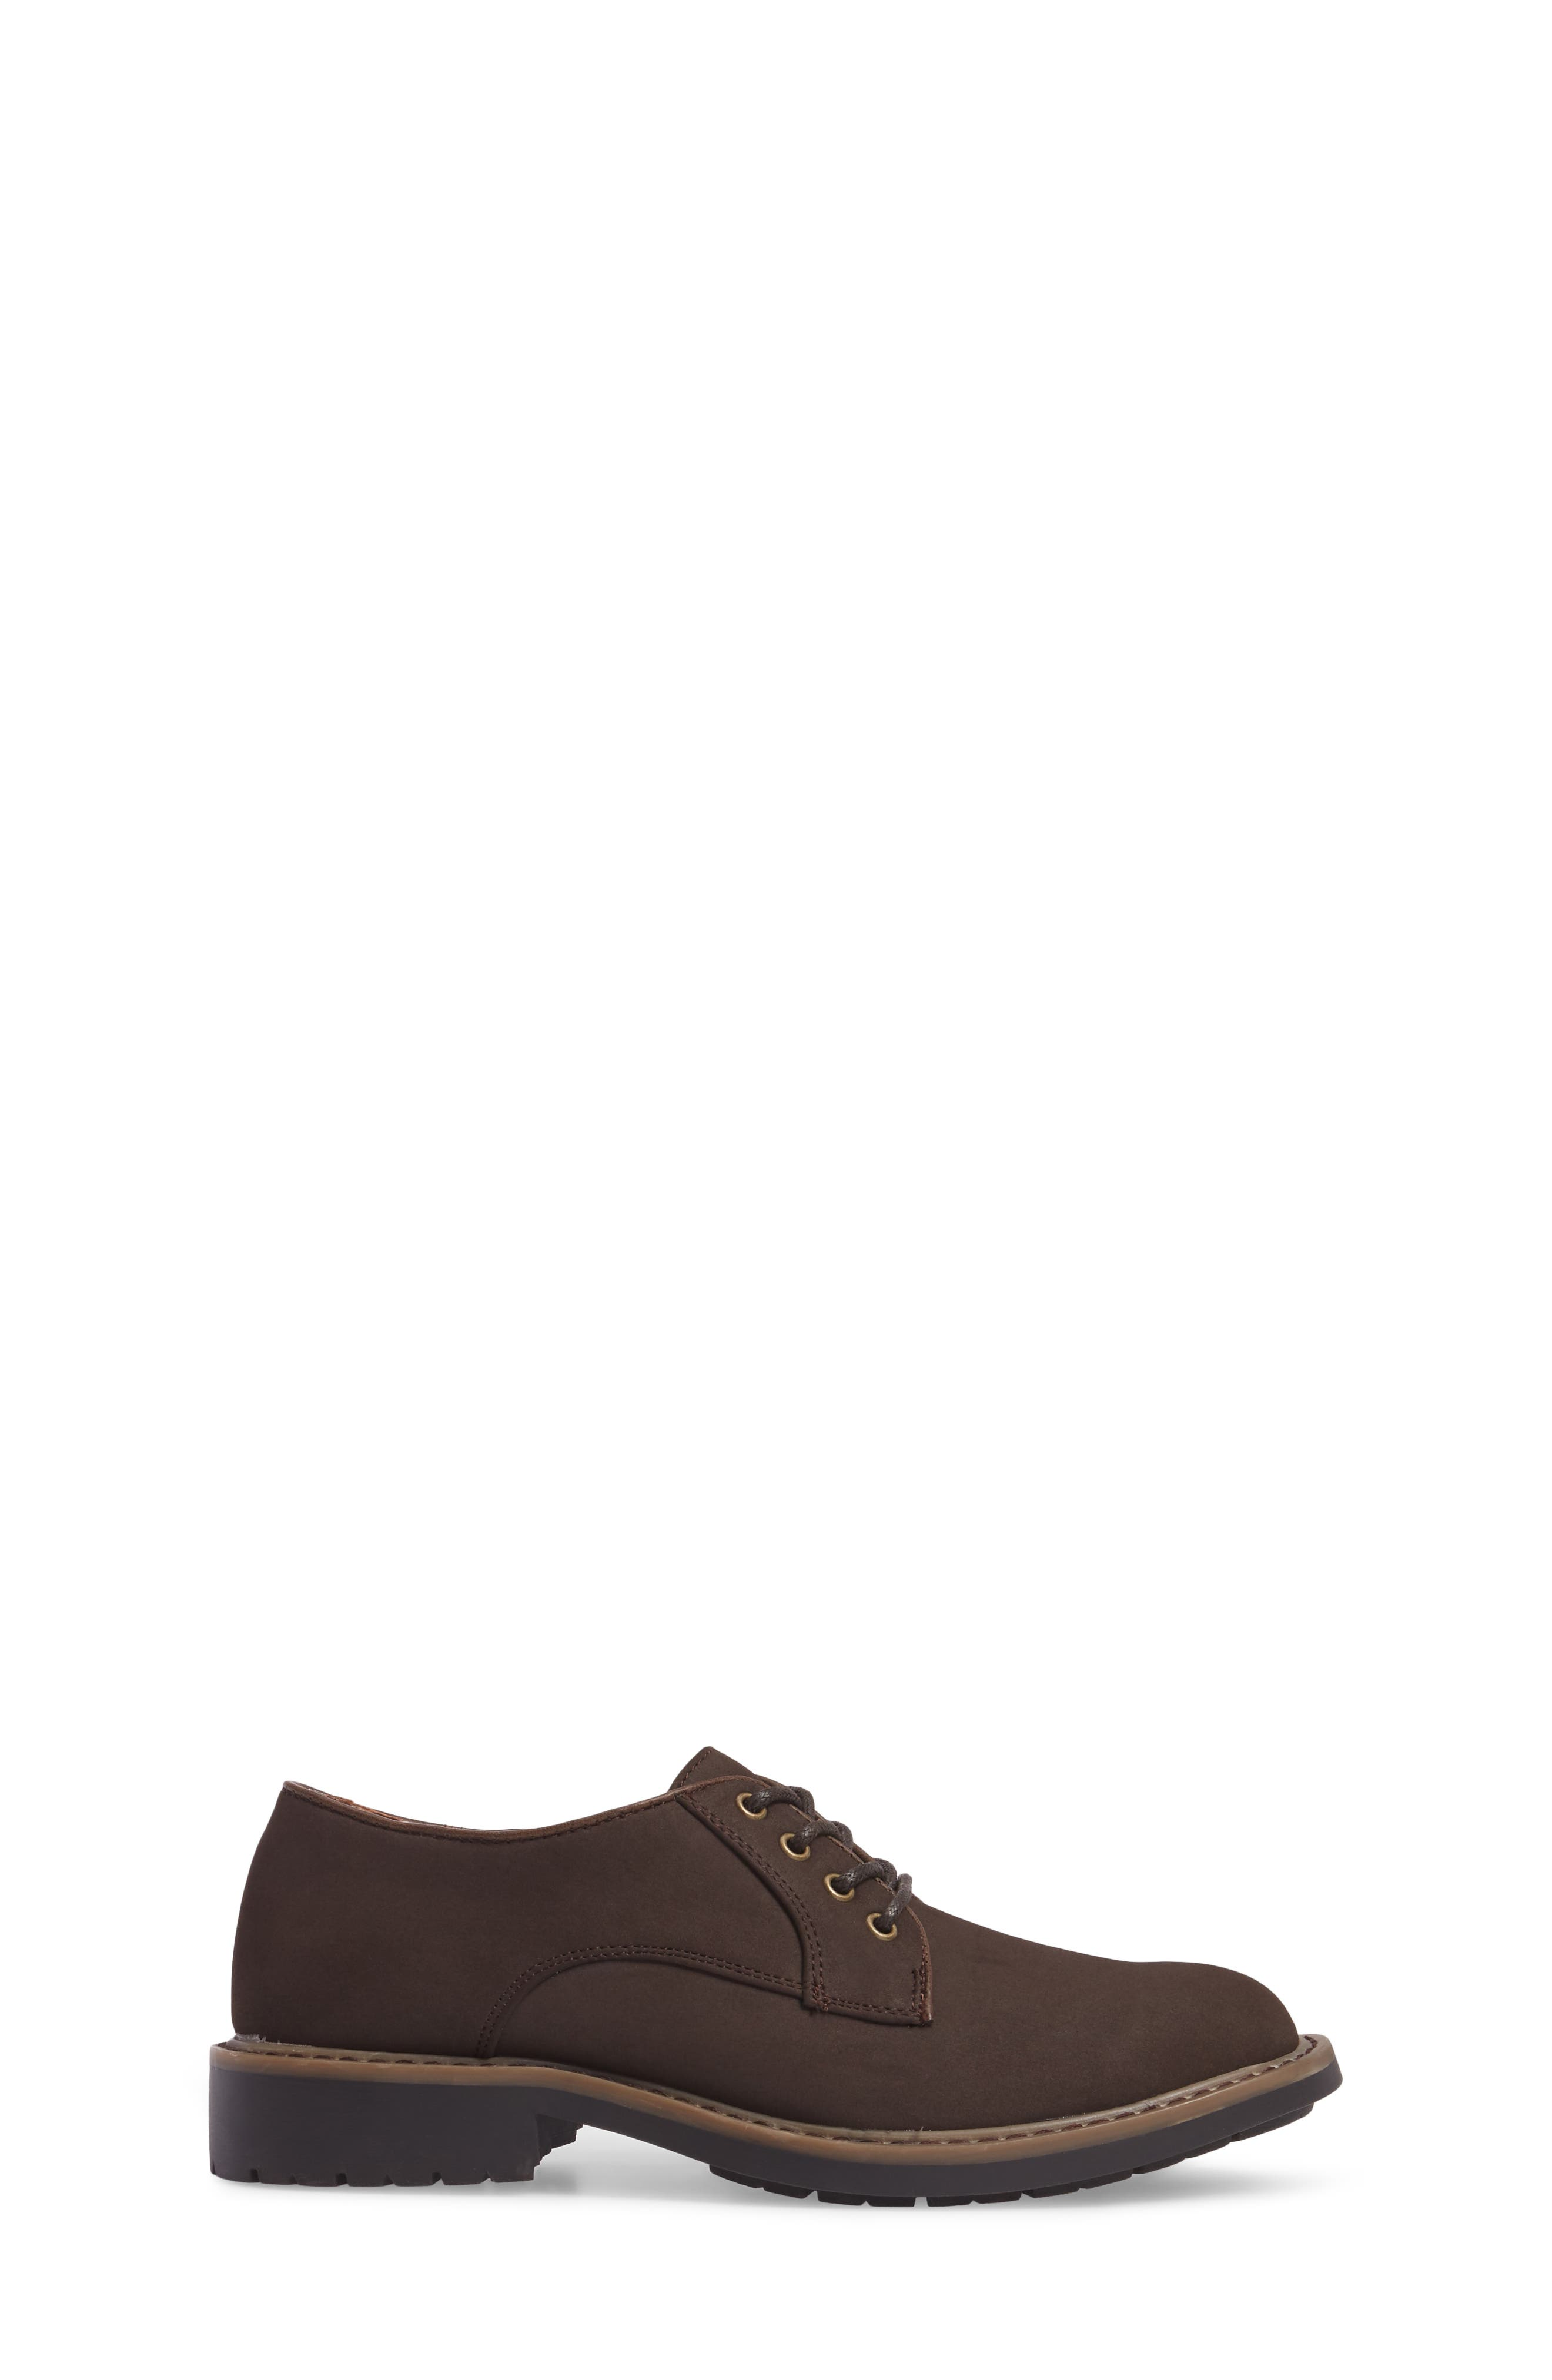 Kenneth Cole New York Take Buck Oxford,                             Alternate thumbnail 3, color,                             233